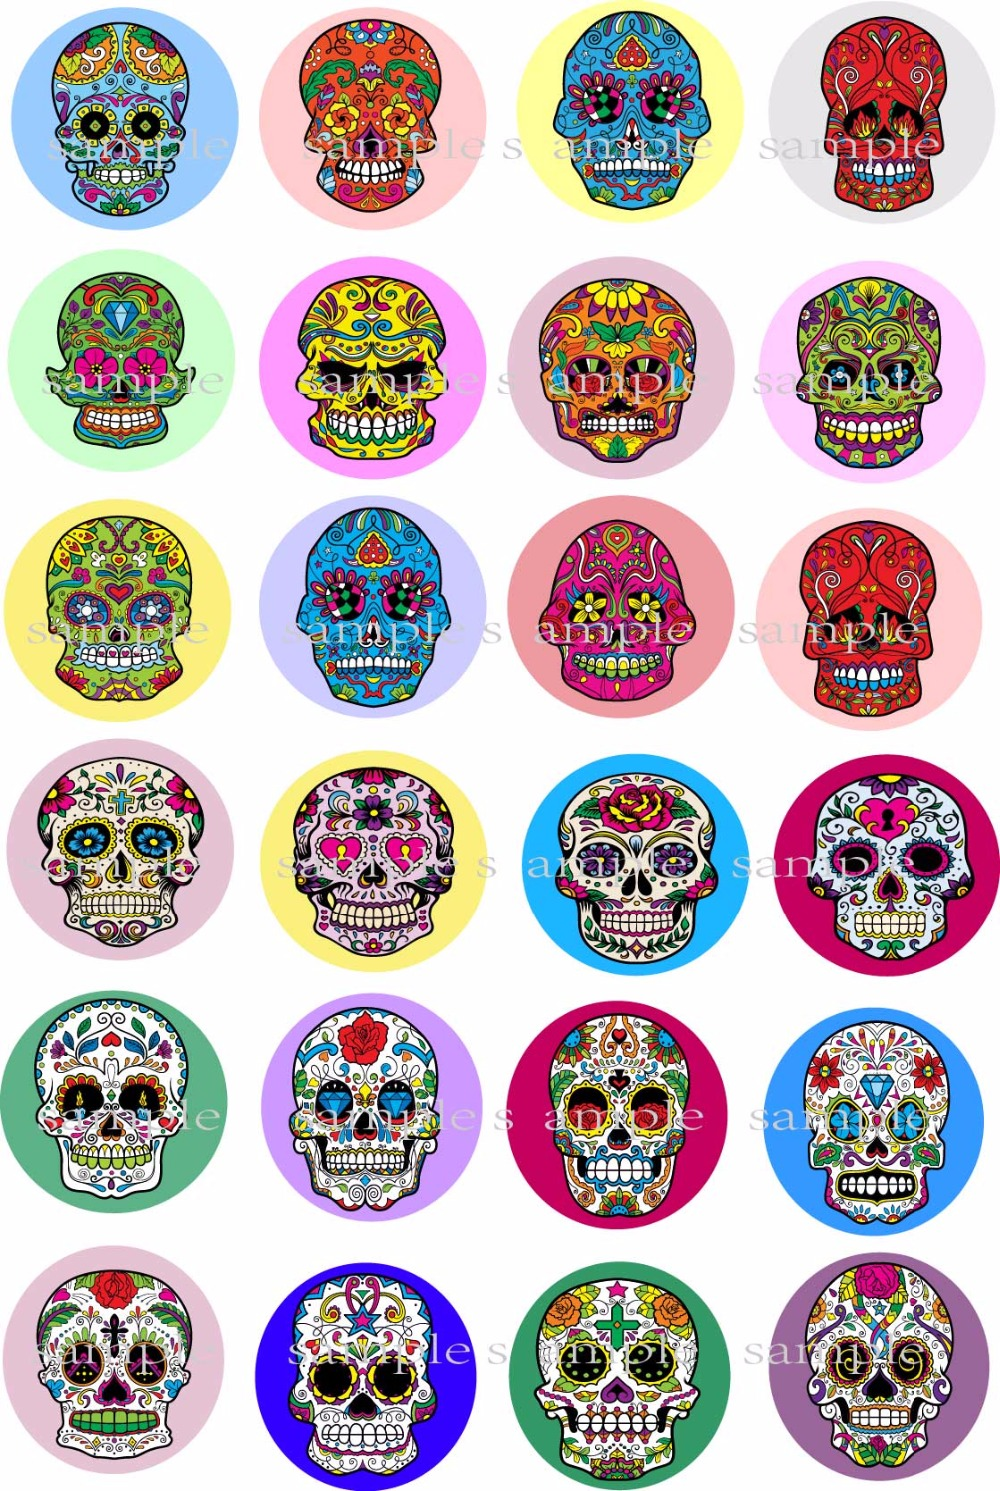 24 Day Of The Dead Mexican Sugar Skull Edible Cake Topper